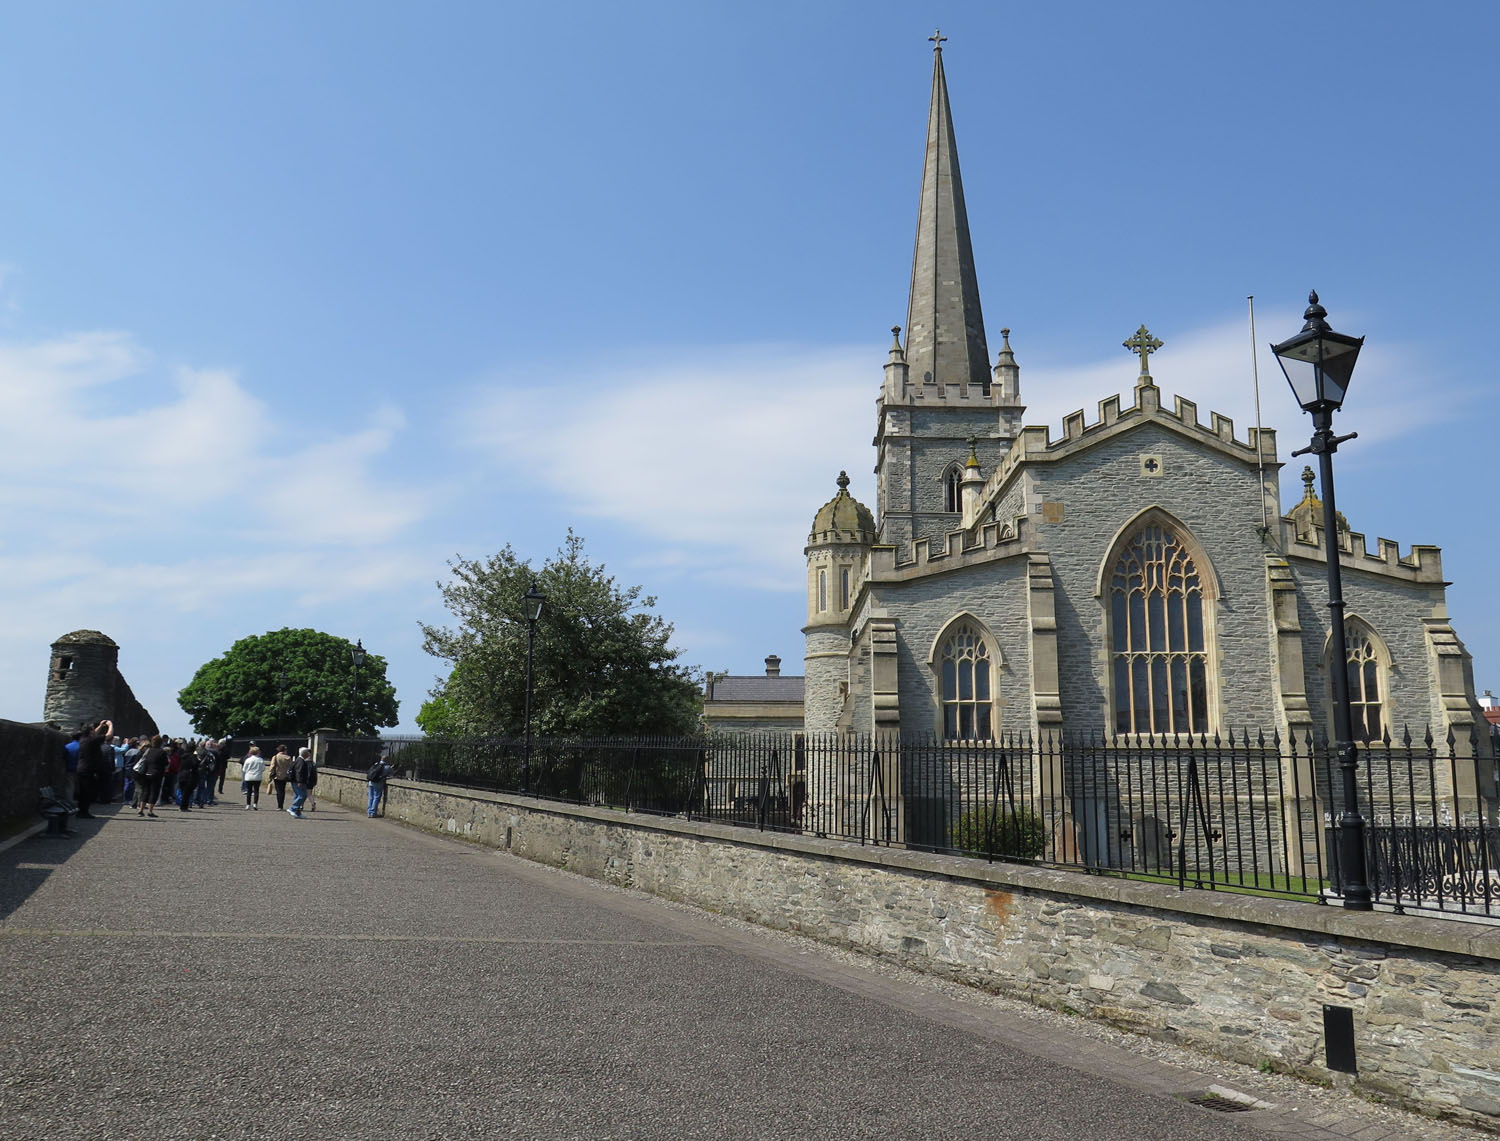 Northern-Ireland-Derry-Londonderry-Saint-Columbs-Cathedral